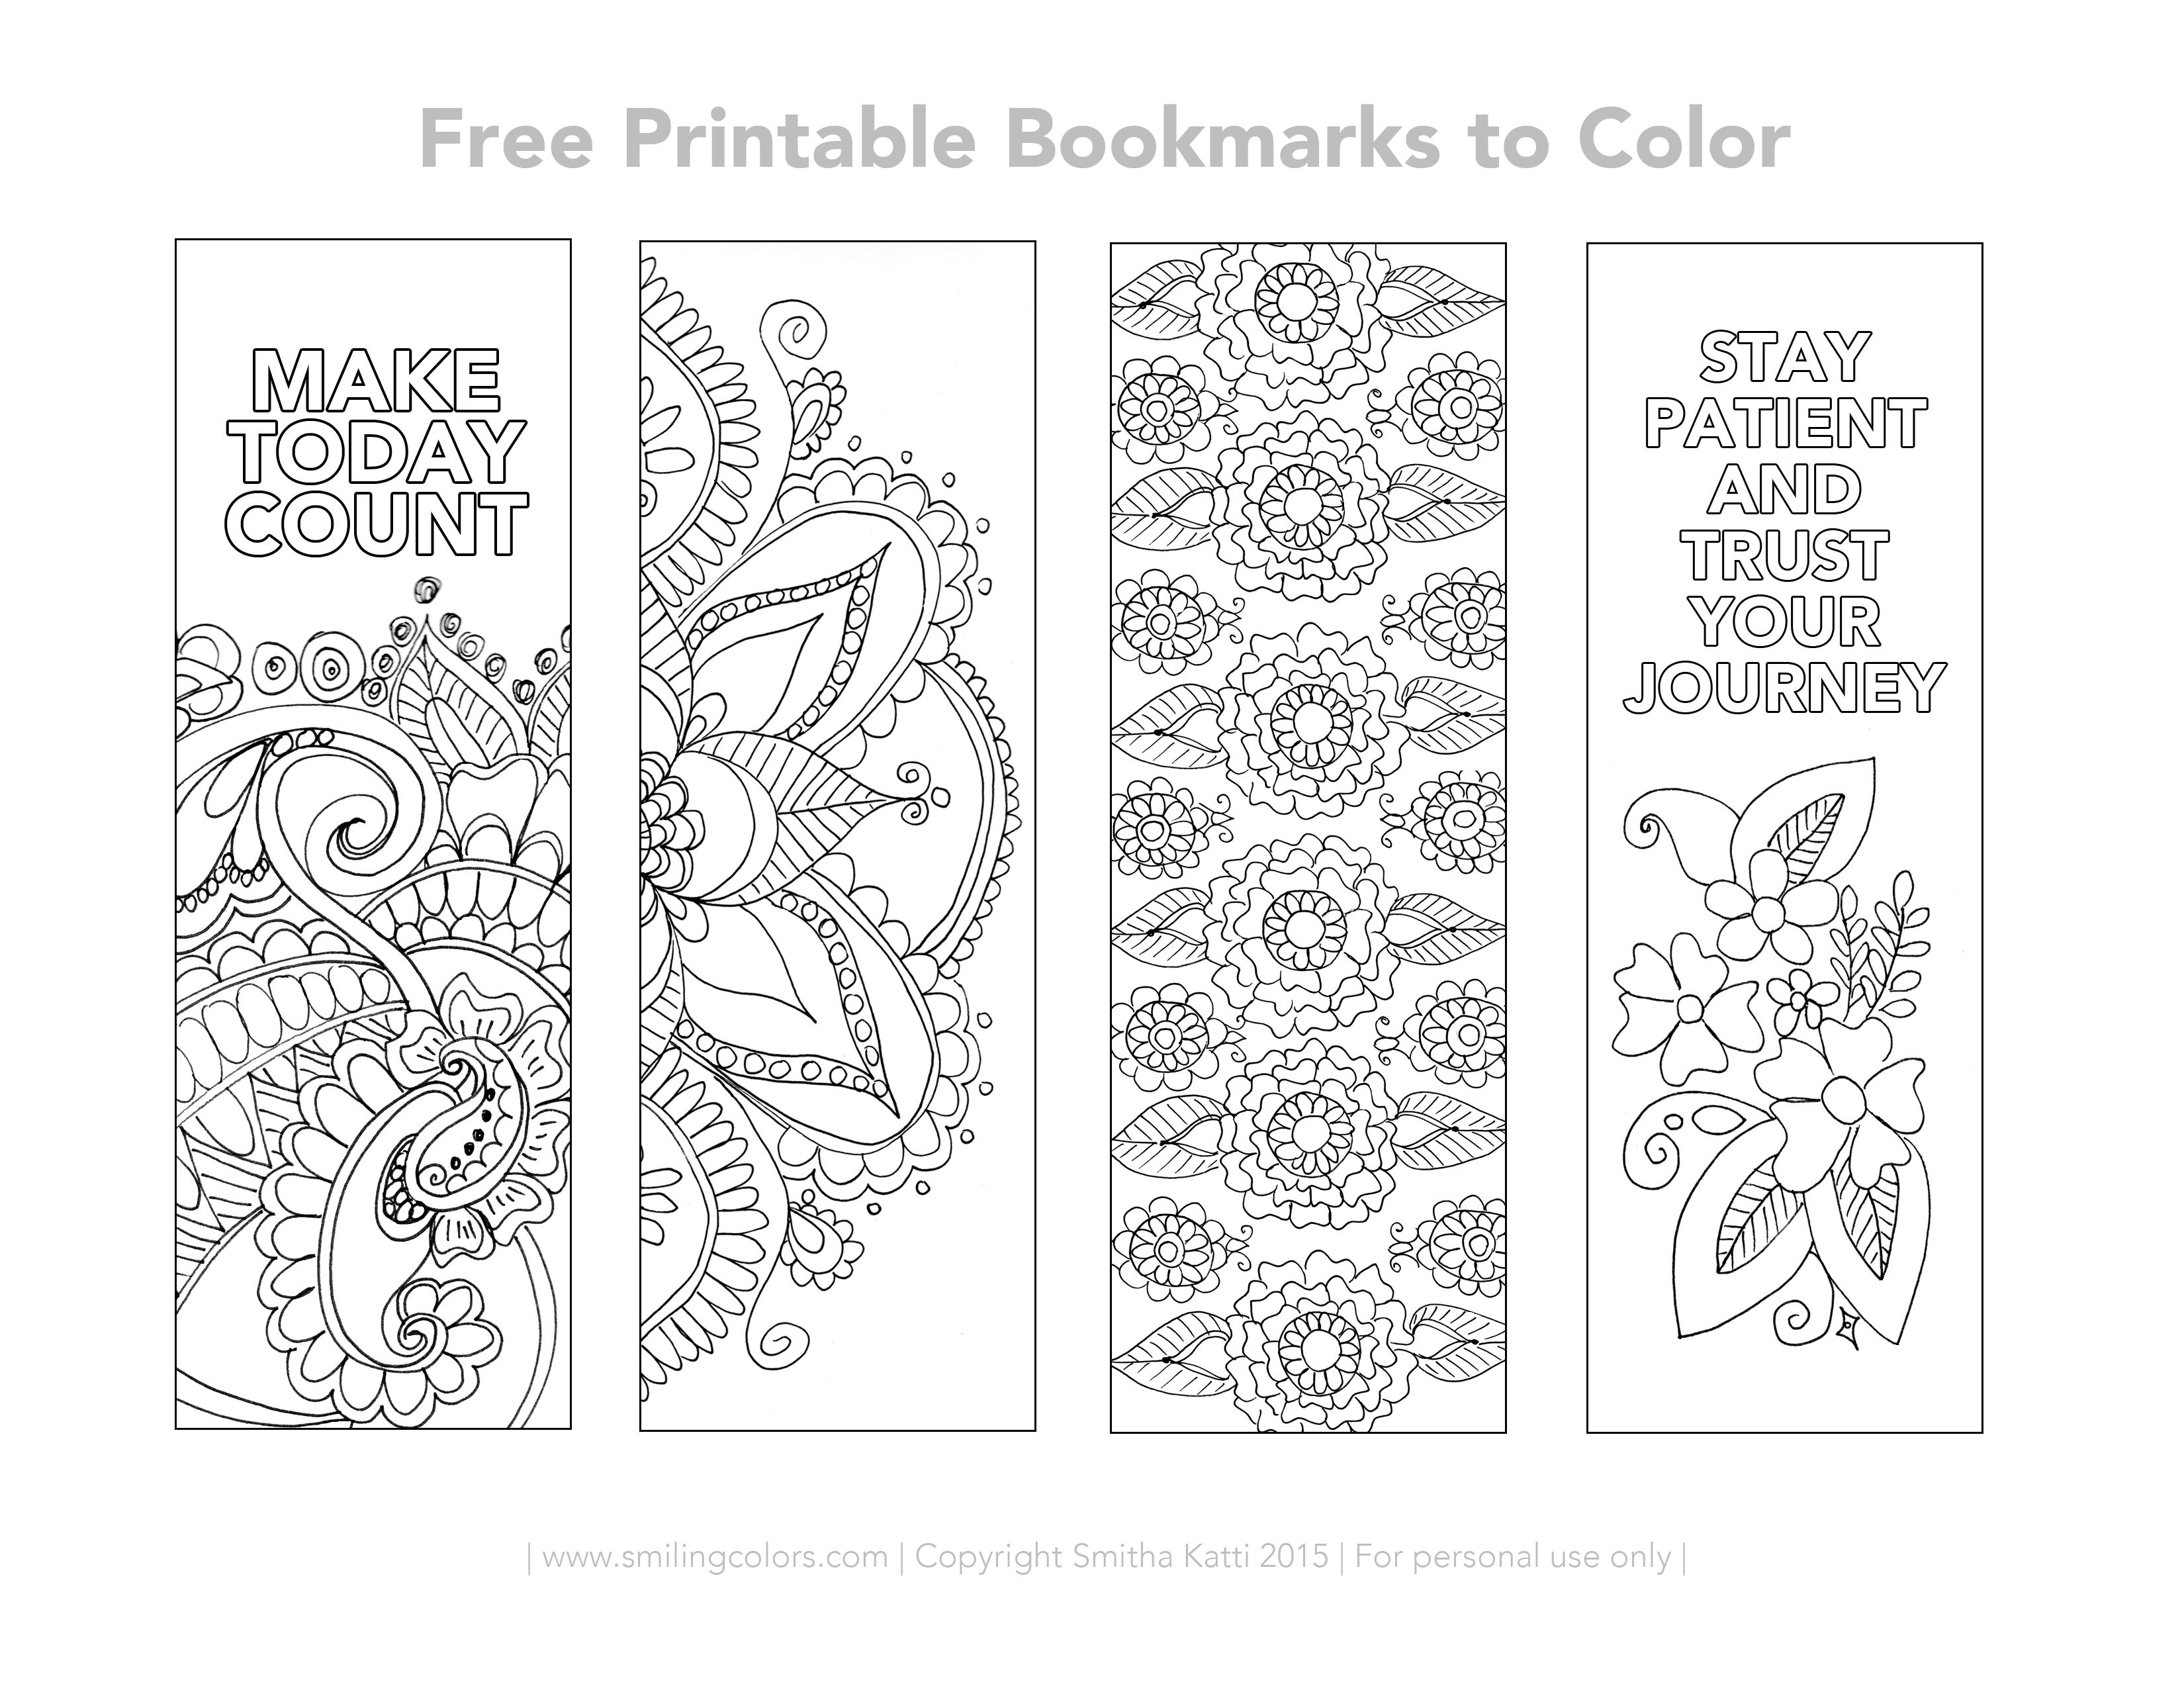 Free Printable Bookmarks to Color | Coloring pages for all Ages ...